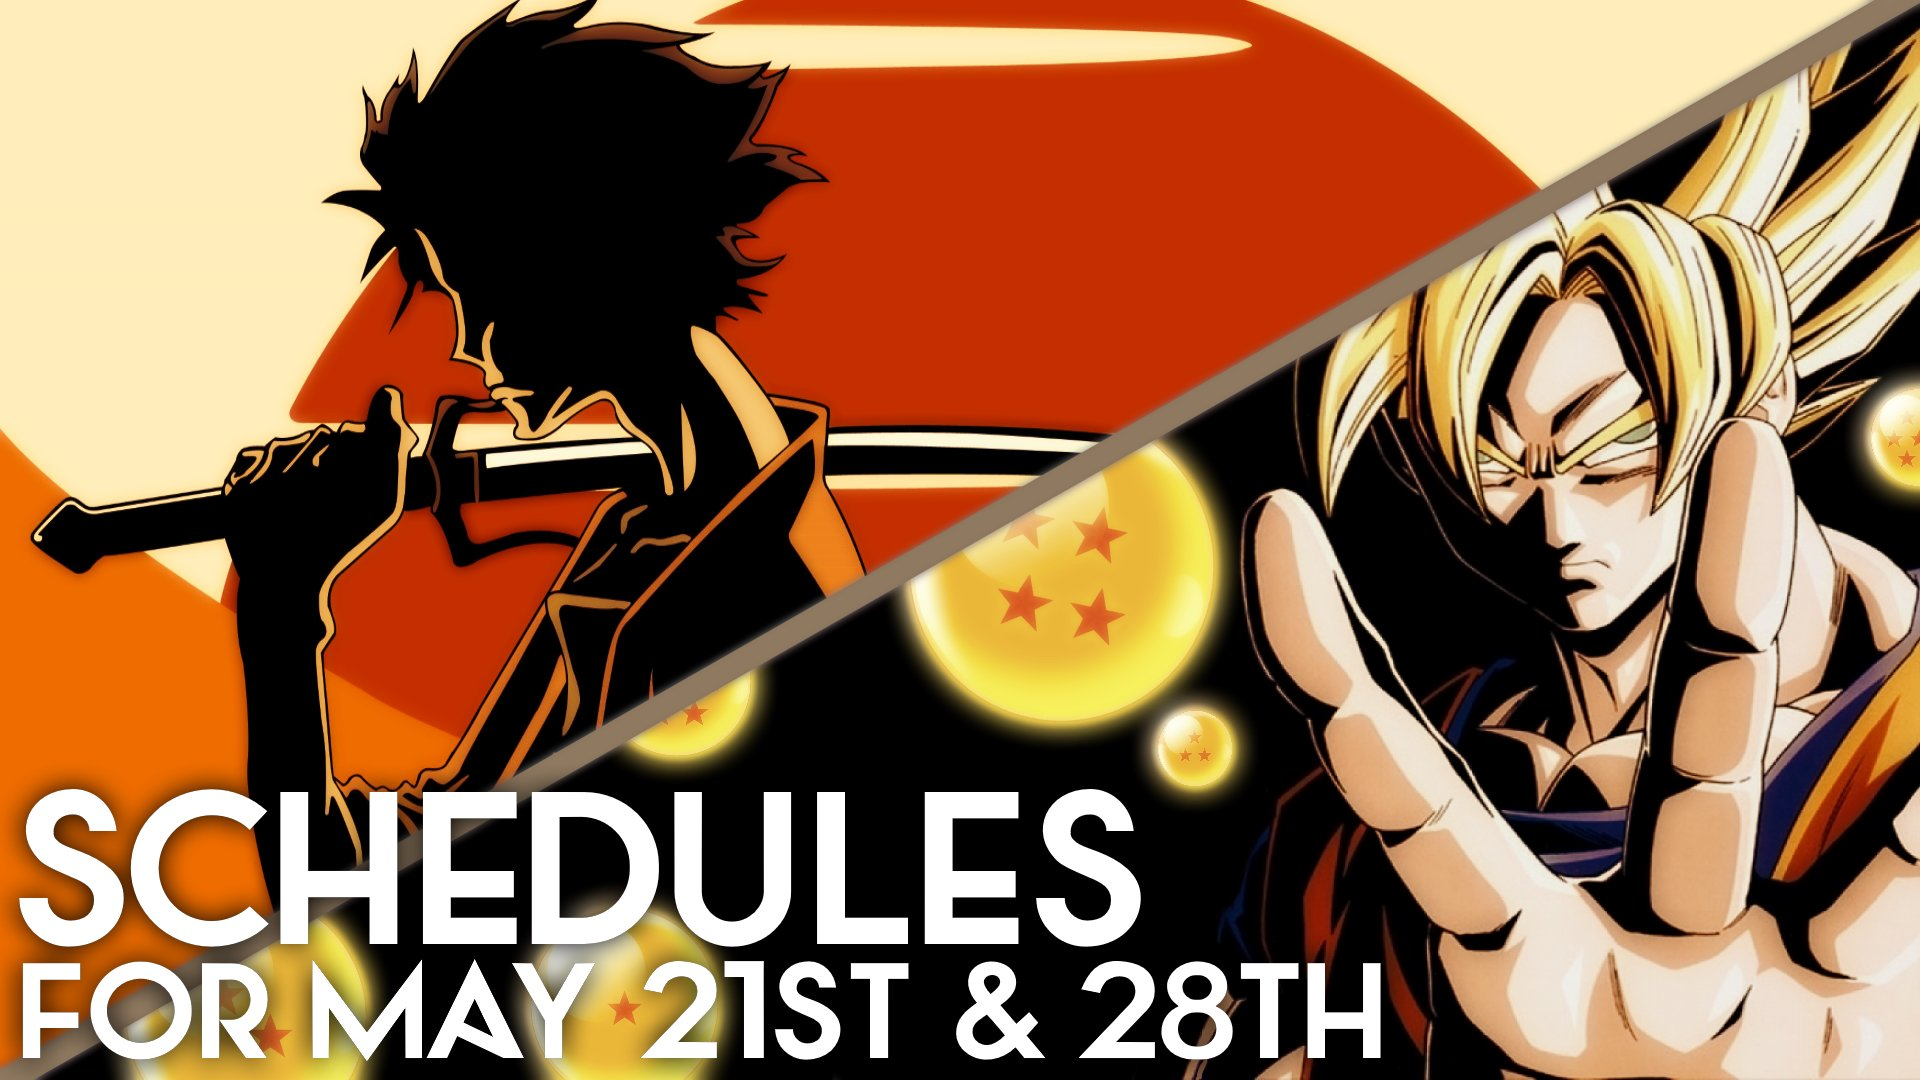 Toonami Schdeules for May 21st and 28th